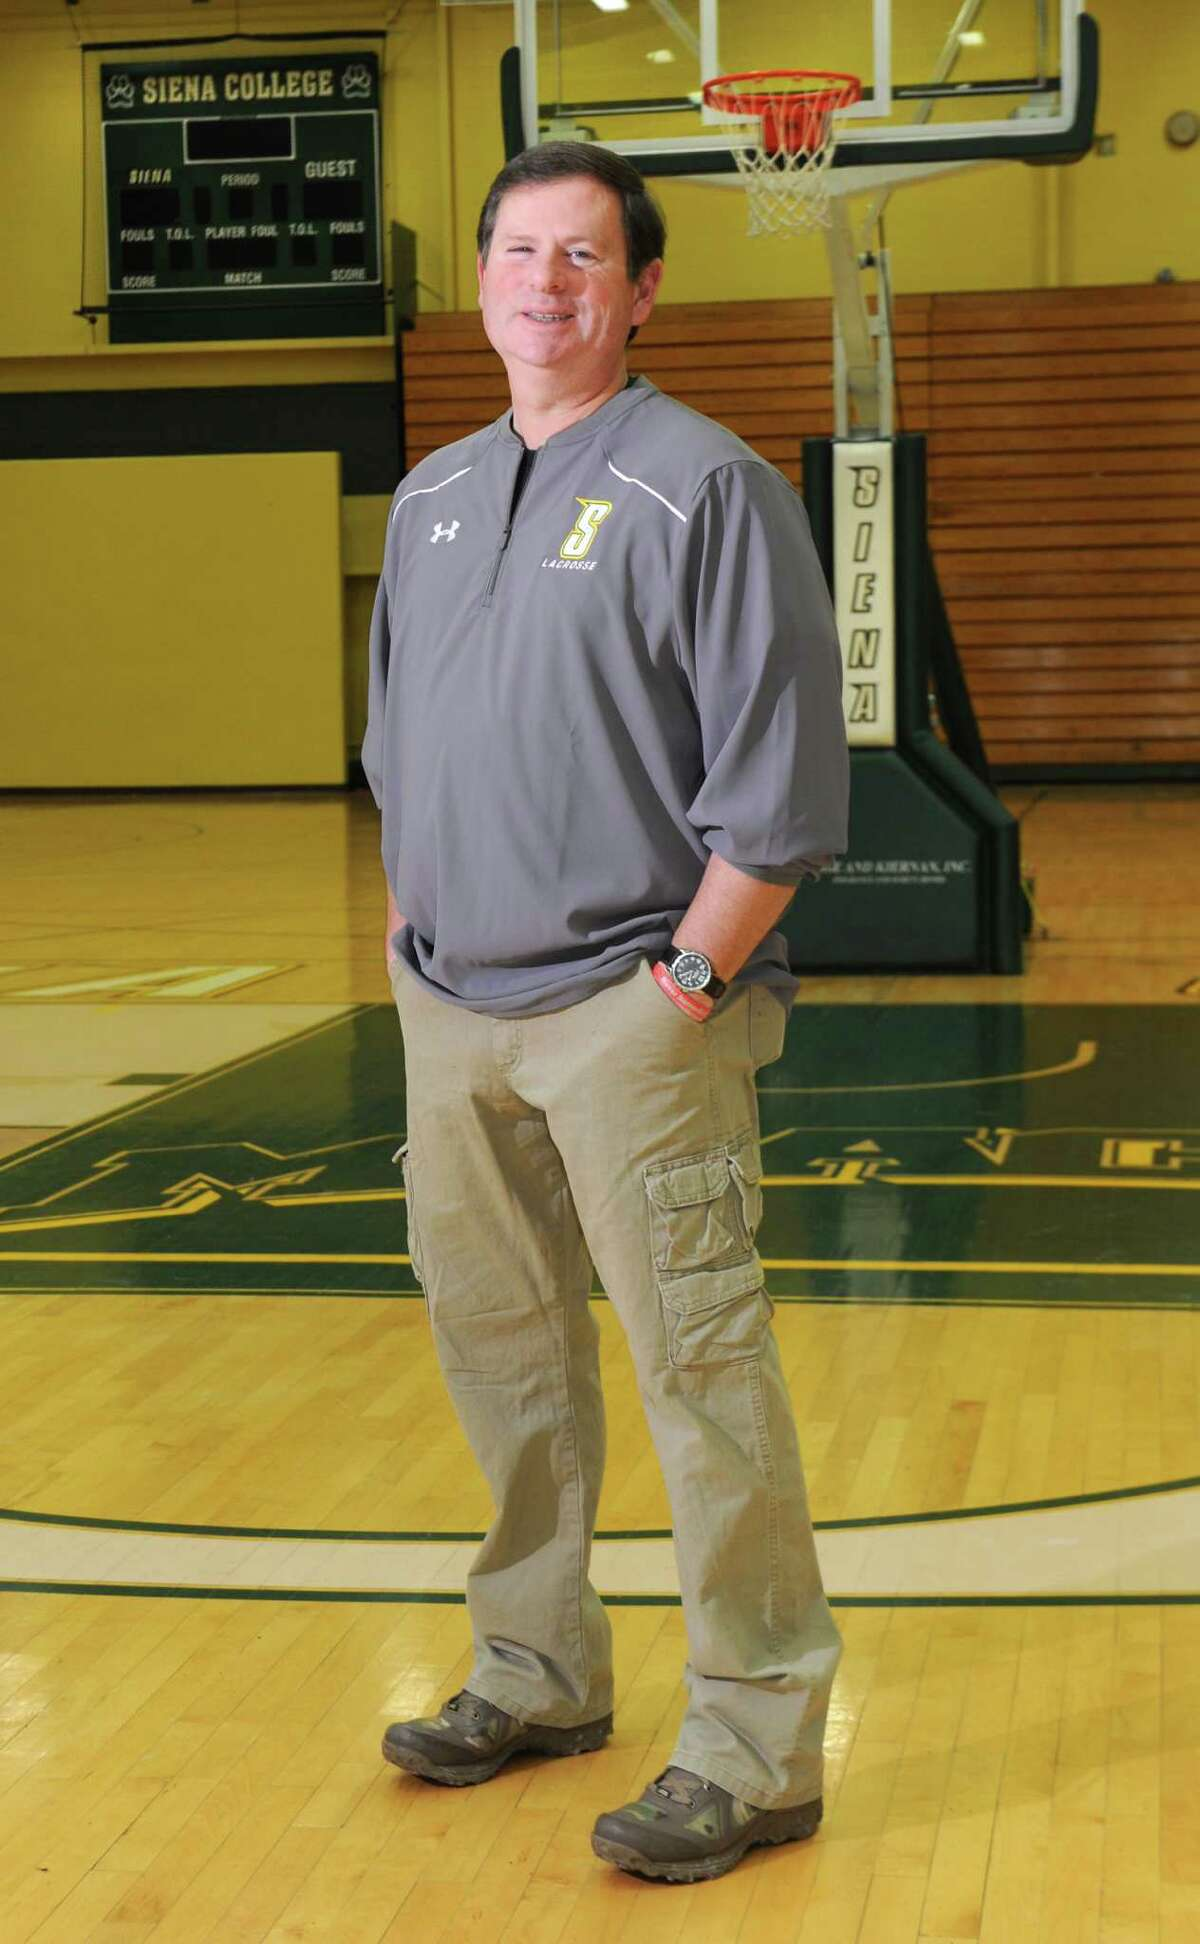 Siena's athletic trainer Greg Dashnaw stands on the basketball court at Siena College on Monday Feb. 23, 2015 in Loudonville, N.Y. (Lori Van Buren / Times Union)